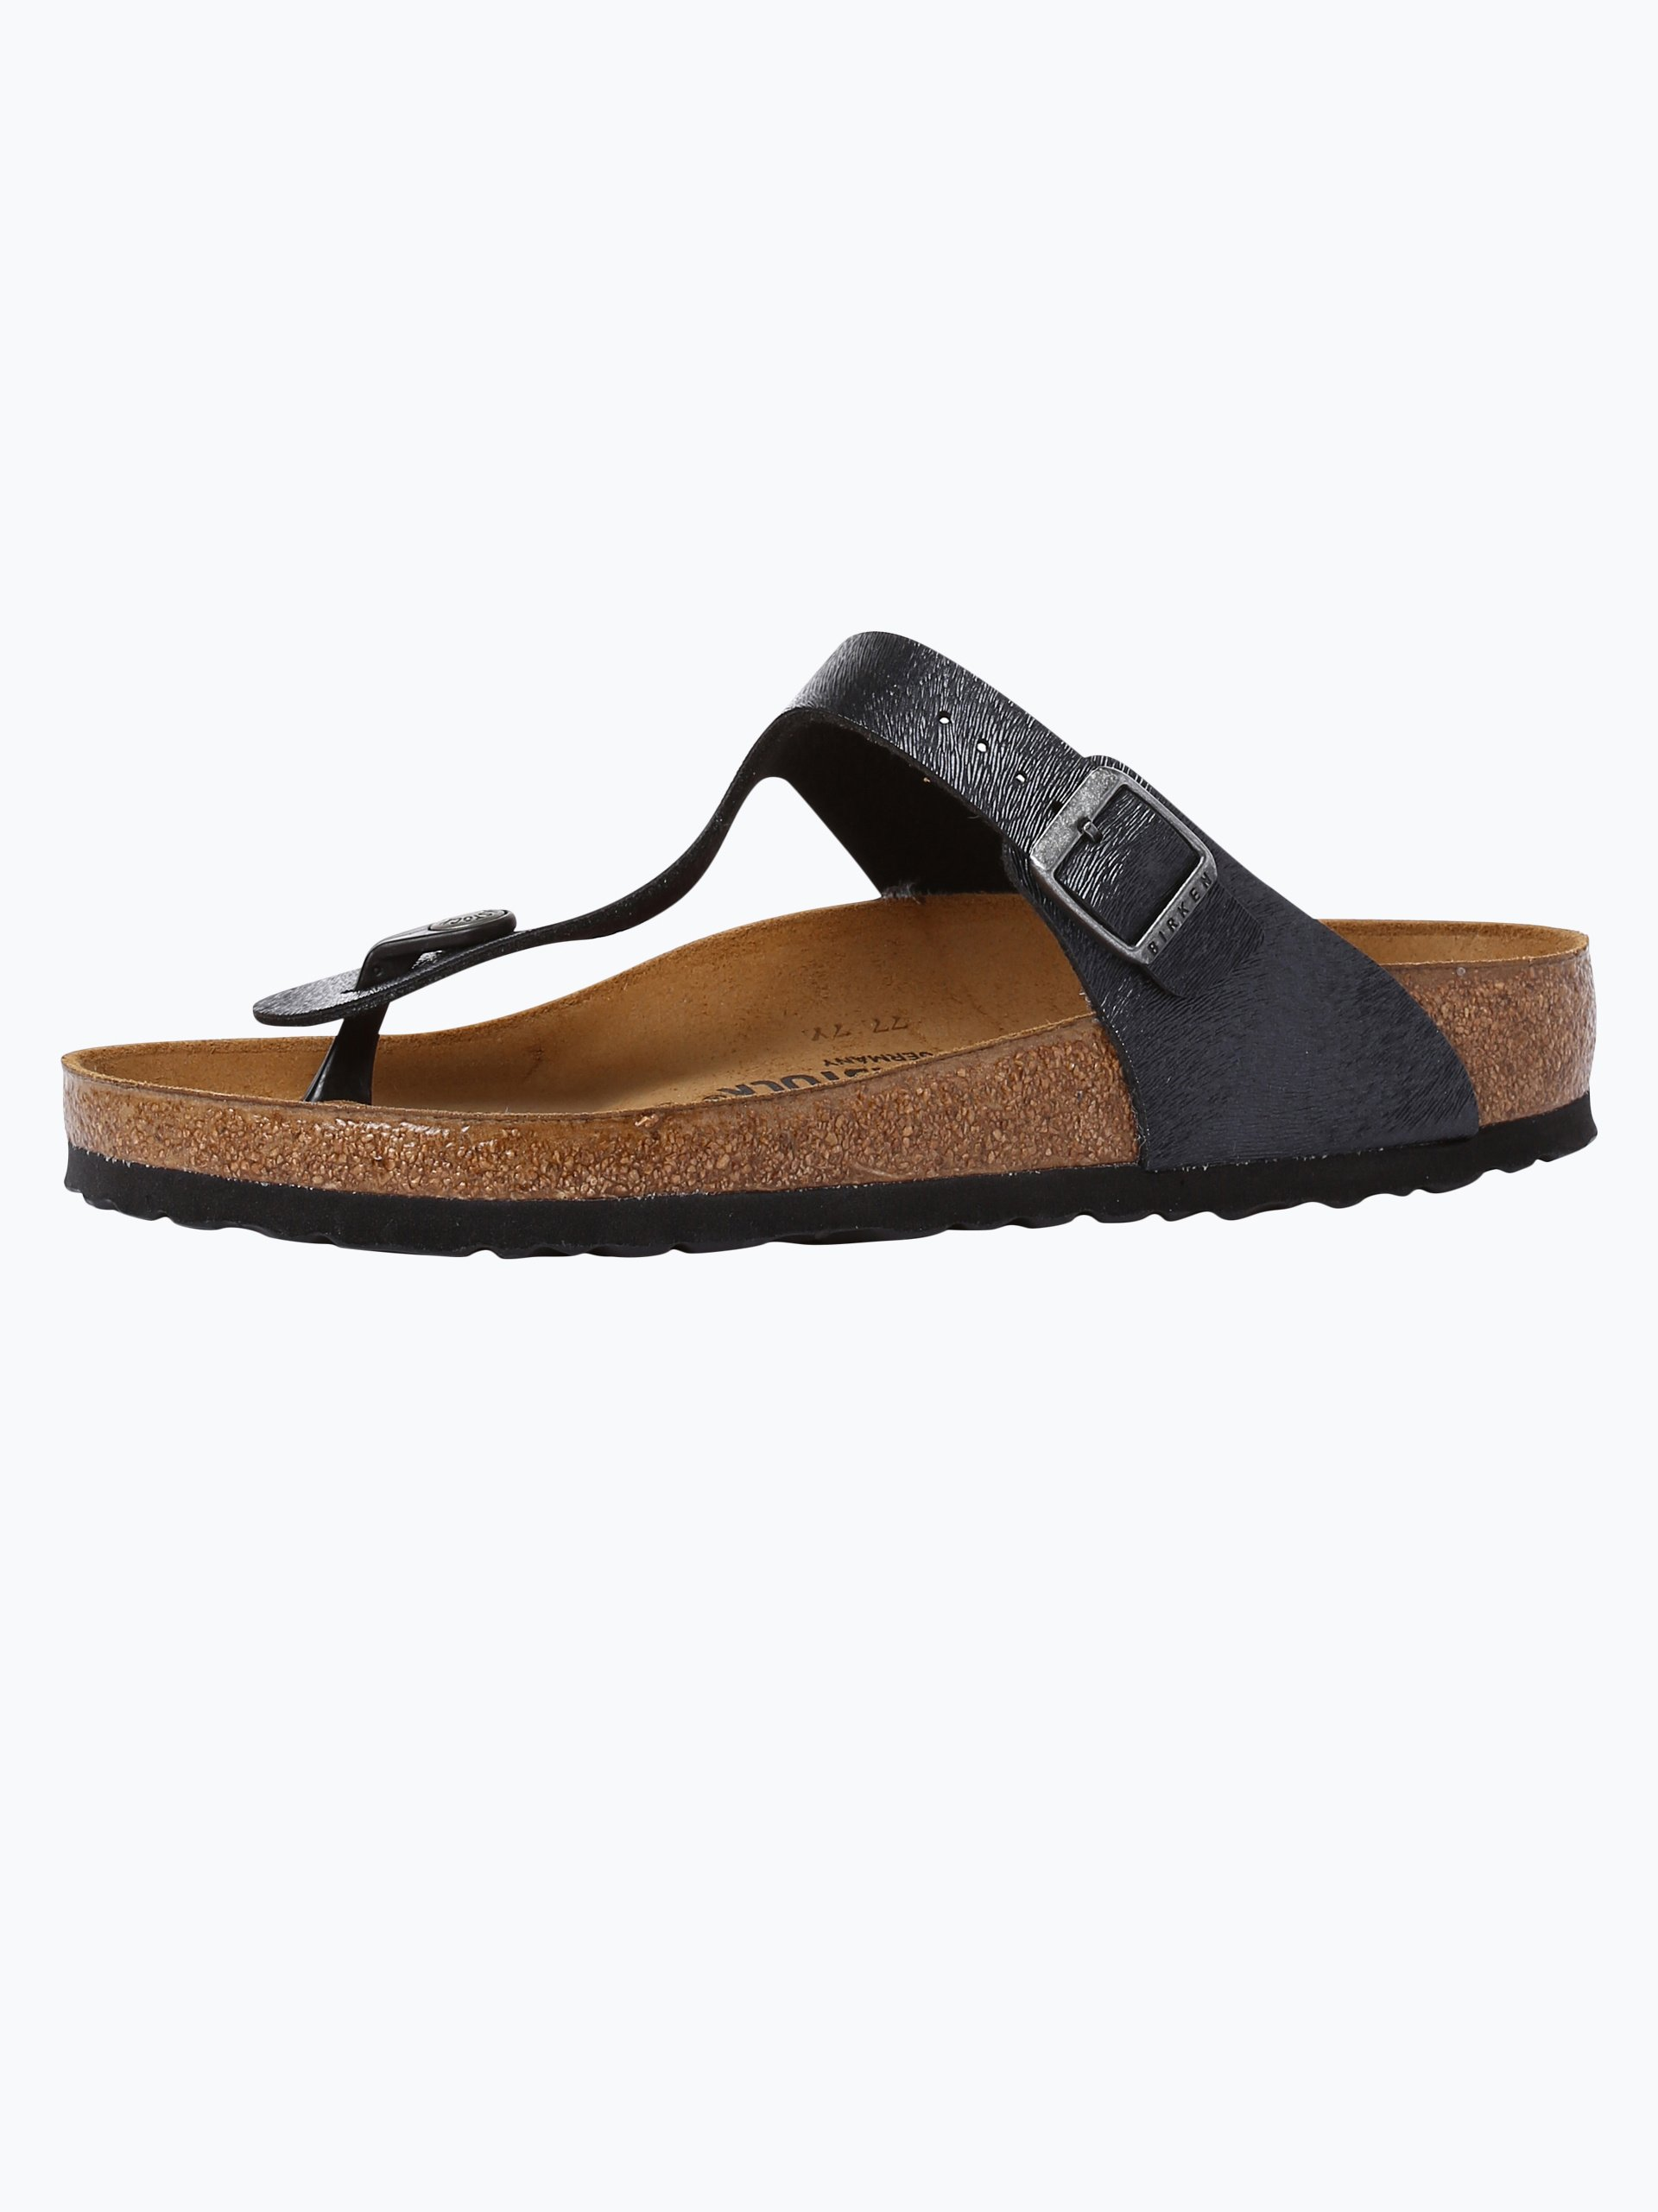 birkenstock damen sandalen mit leder anteil gizeh bs schwarz uni online kaufen vangraaf com. Black Bedroom Furniture Sets. Home Design Ideas